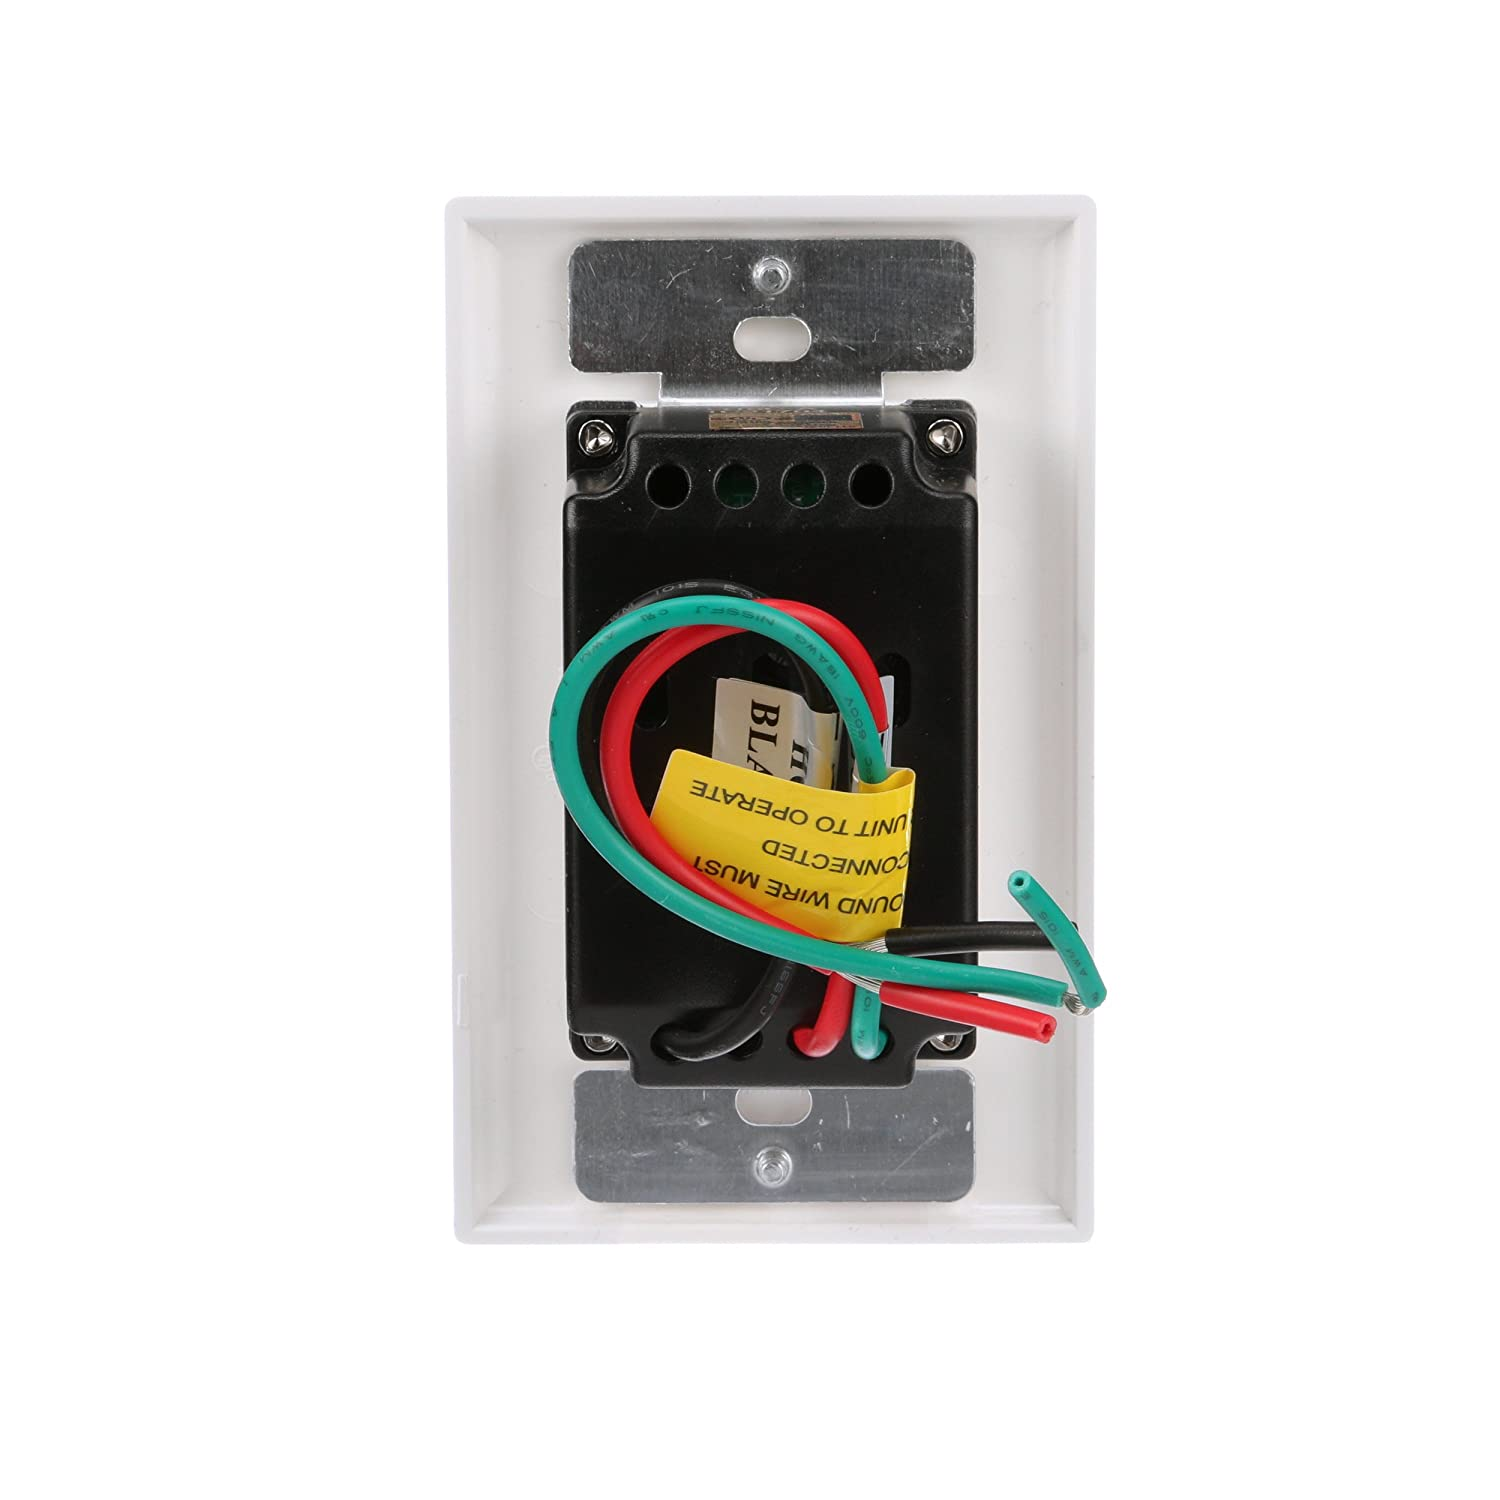 Woods 59020wd In Wall 7 Day Digital Timer No Neutral Electrical Fan Switch Wiring Diagram As Well Double Pole Timers